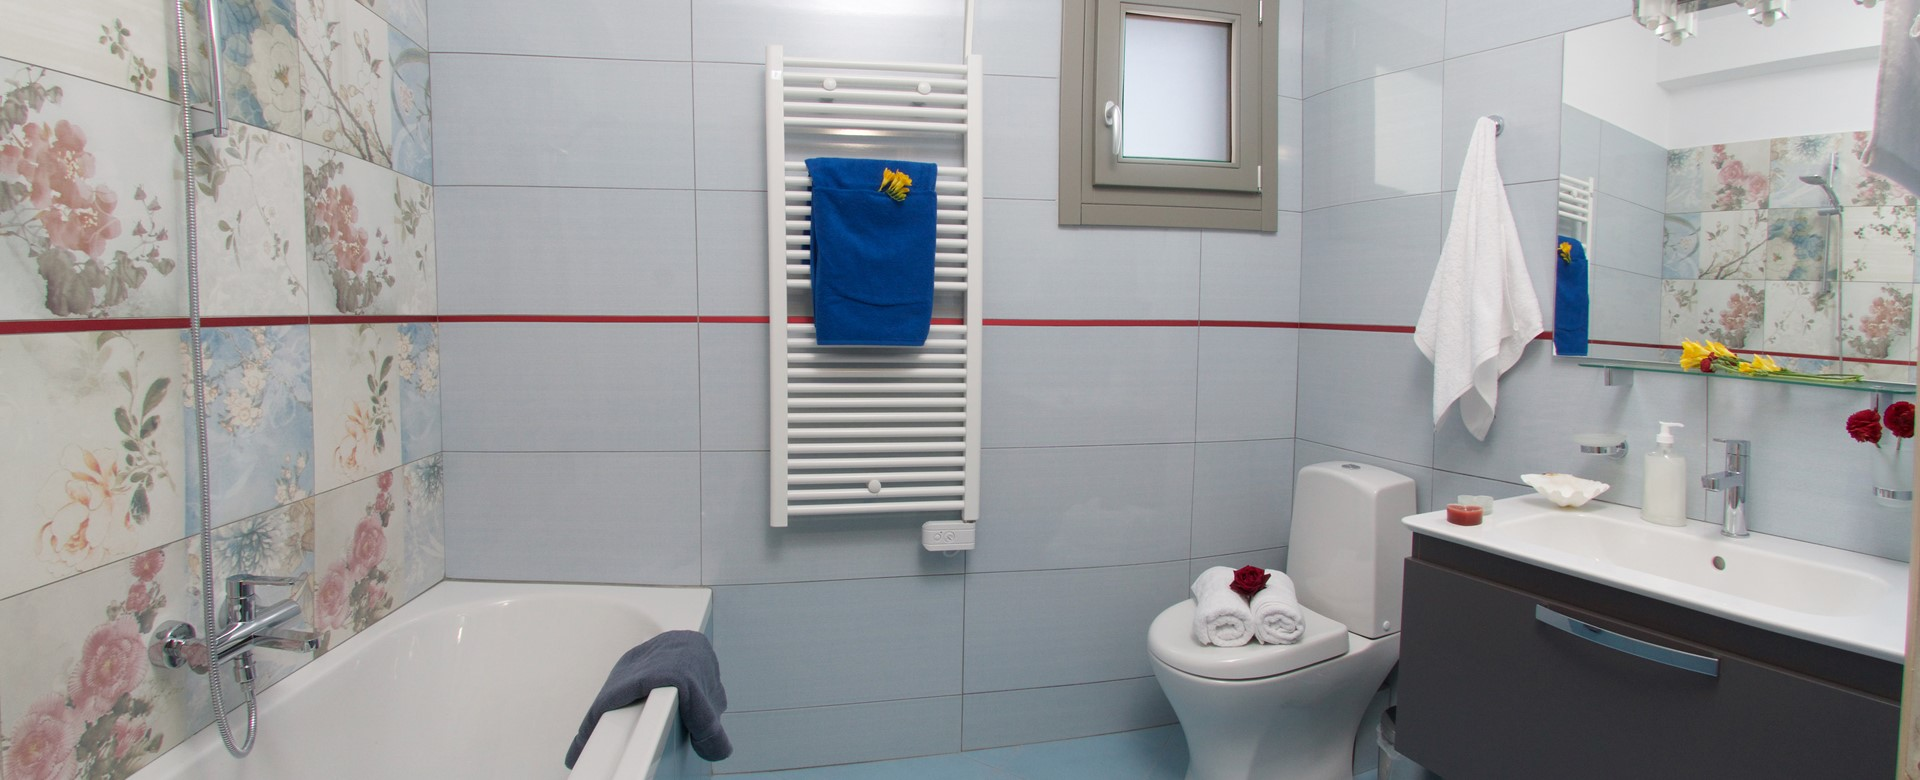 Bathroom with shower over bath and basin in  Villa Amore, Agia Efimia, Kefalonia, Greek Islands